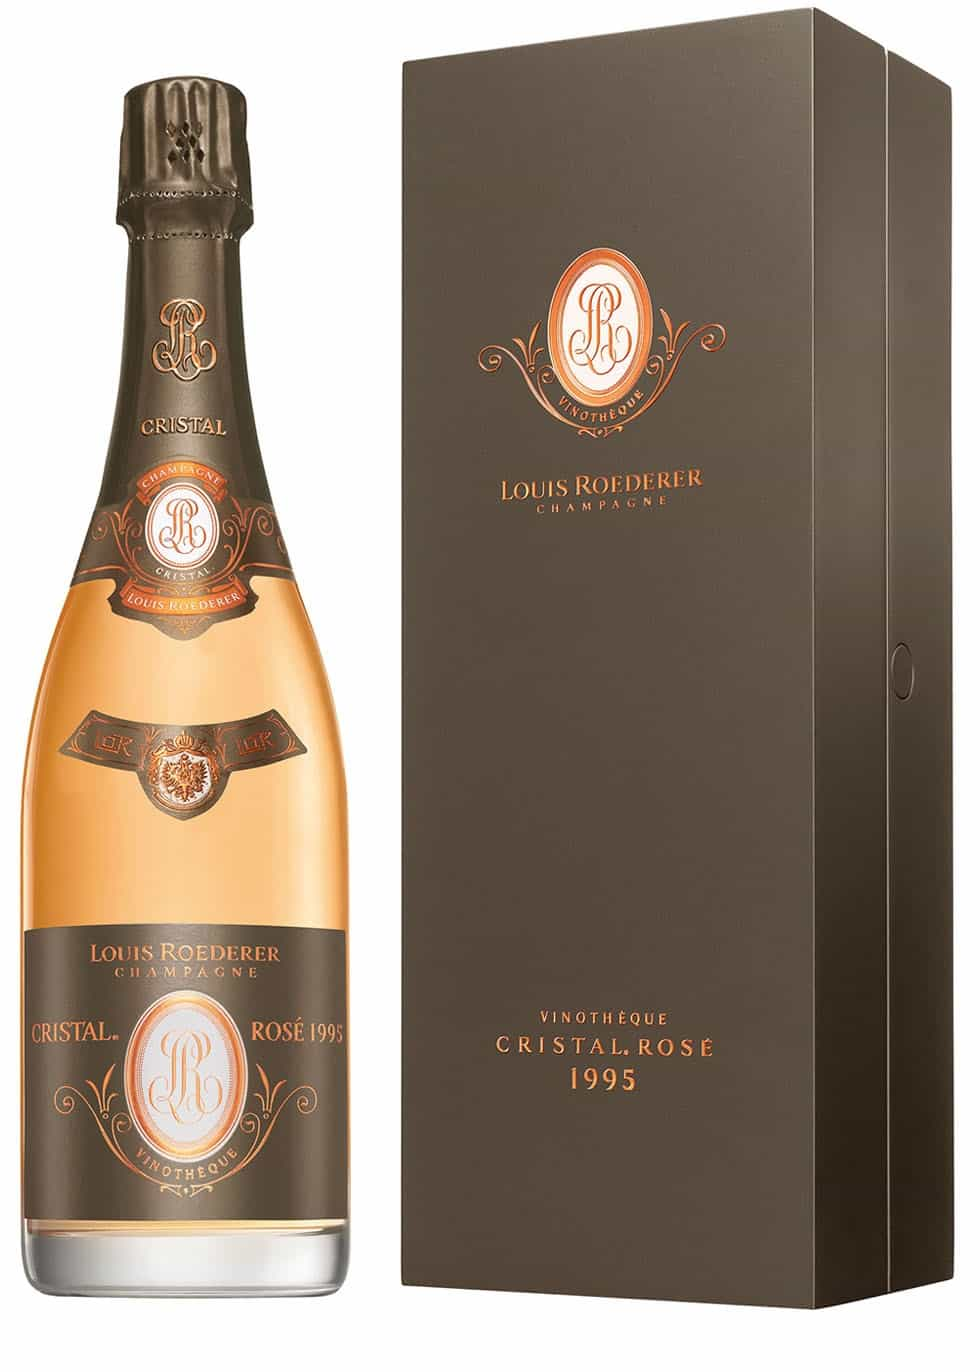 Super rare wine Cristal Vinothèque 1995 is just a click away